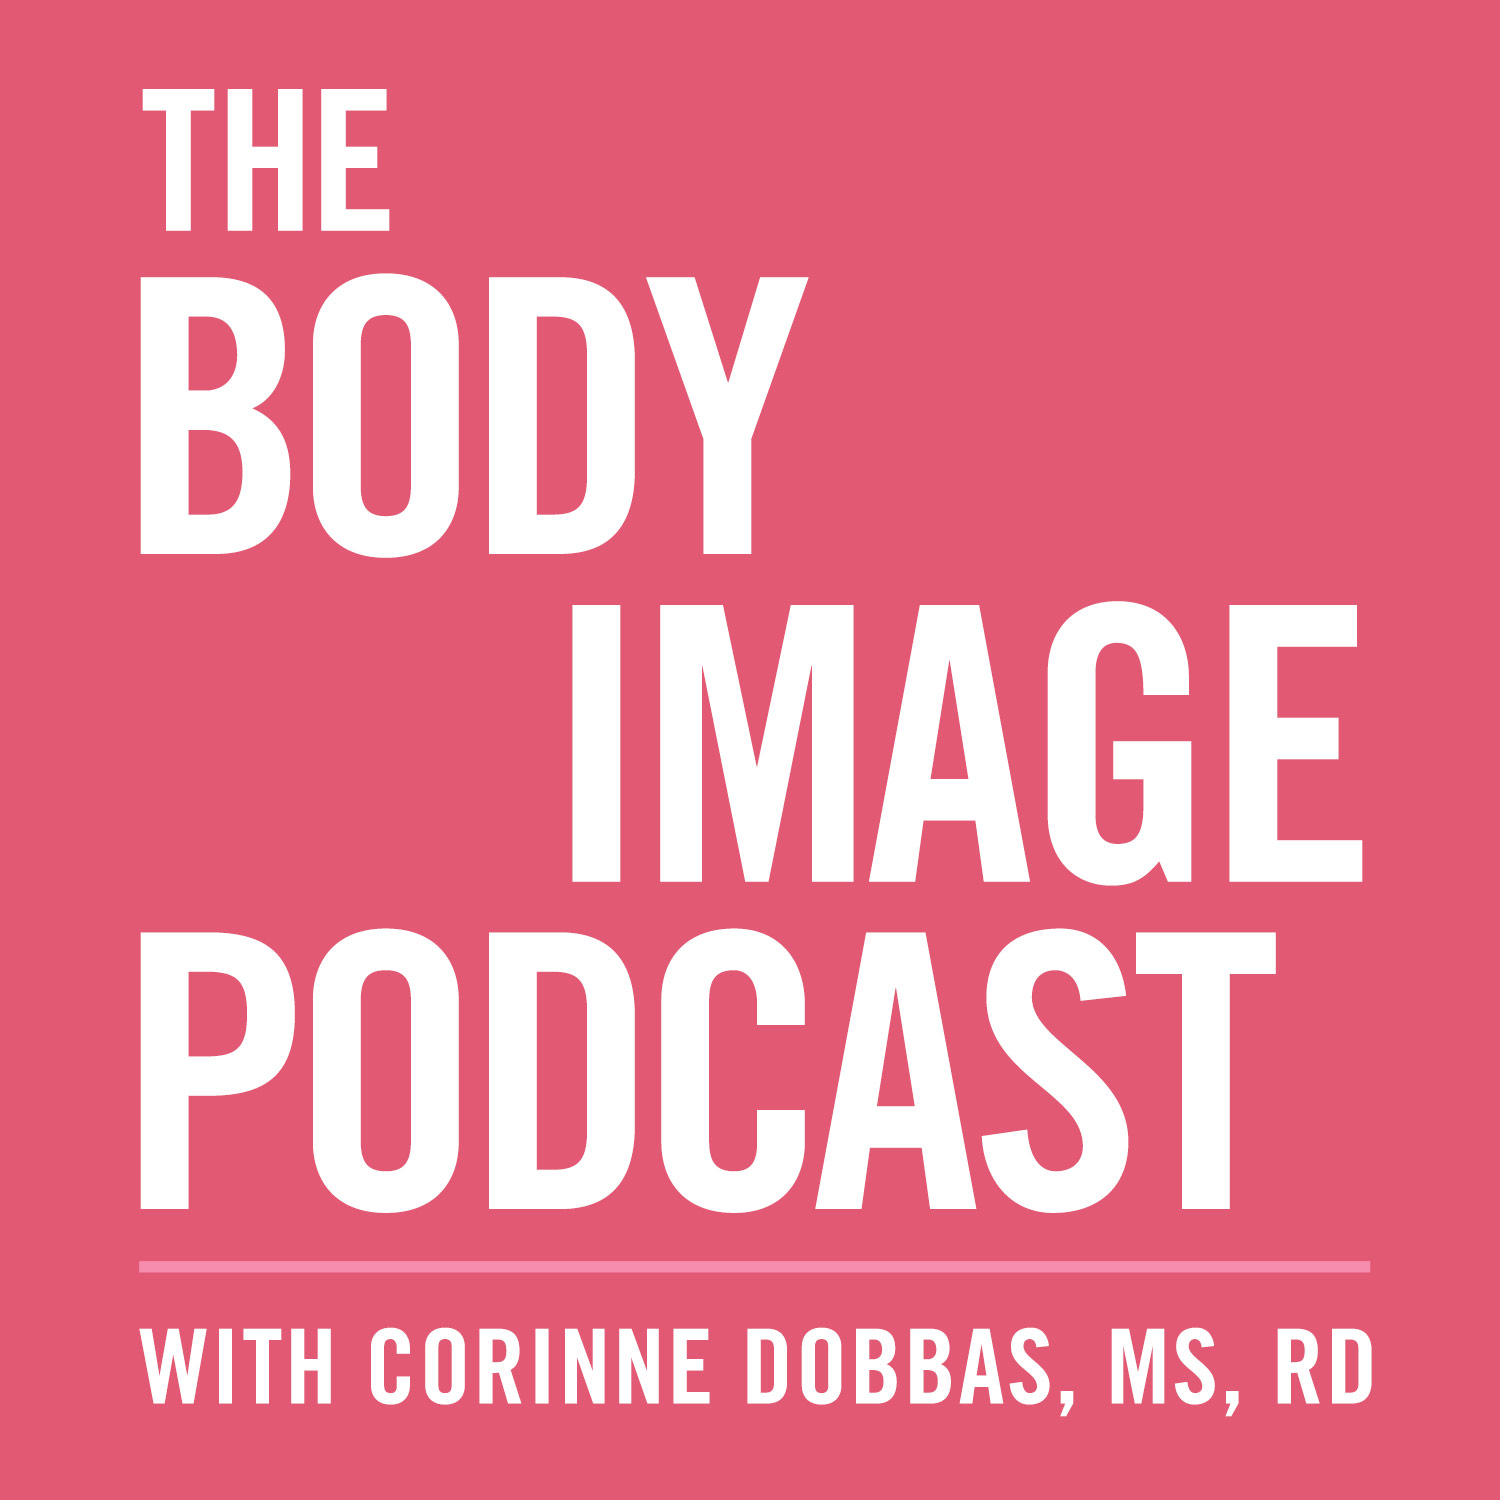 The Body Image Podcast with Corinne Dobbas, MS, RD